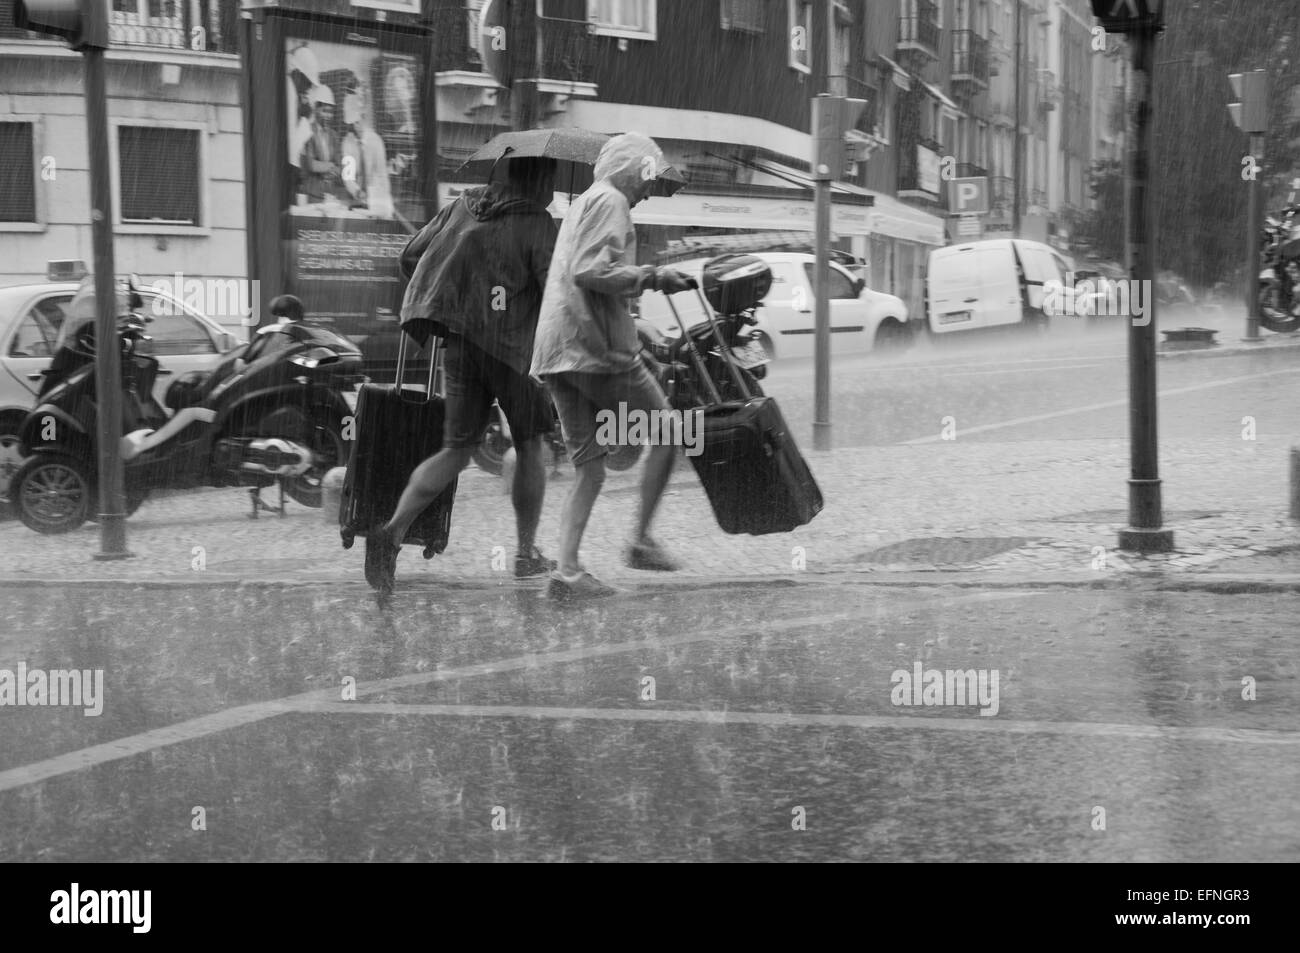 Black and white photo of two people running on the street under heavy rain